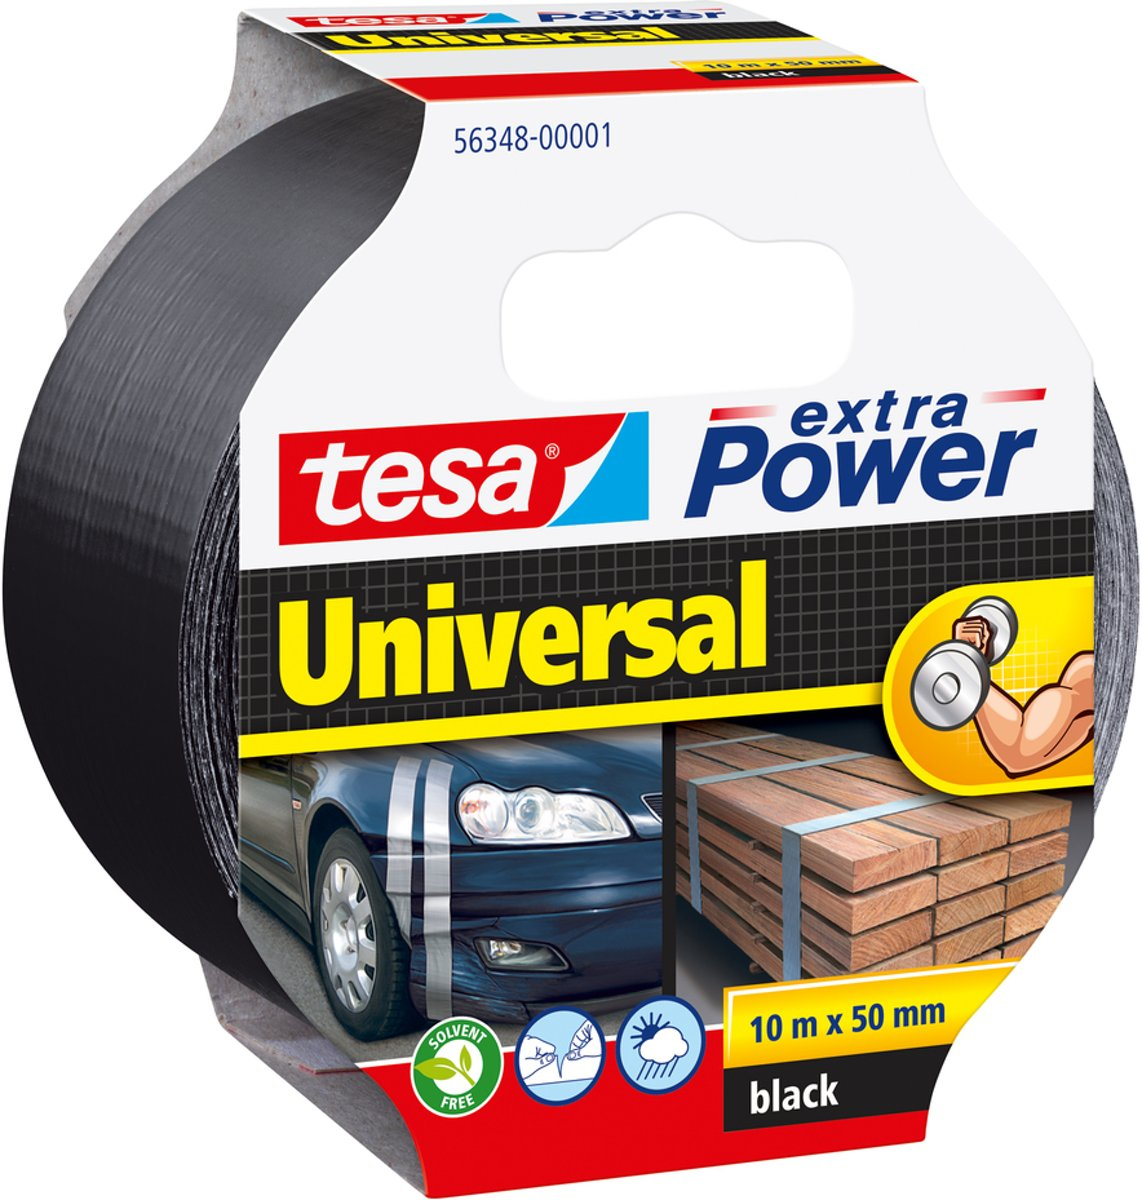 Tesa Extra Power Universal - Tape - 10 m x 50 mm - Zwart